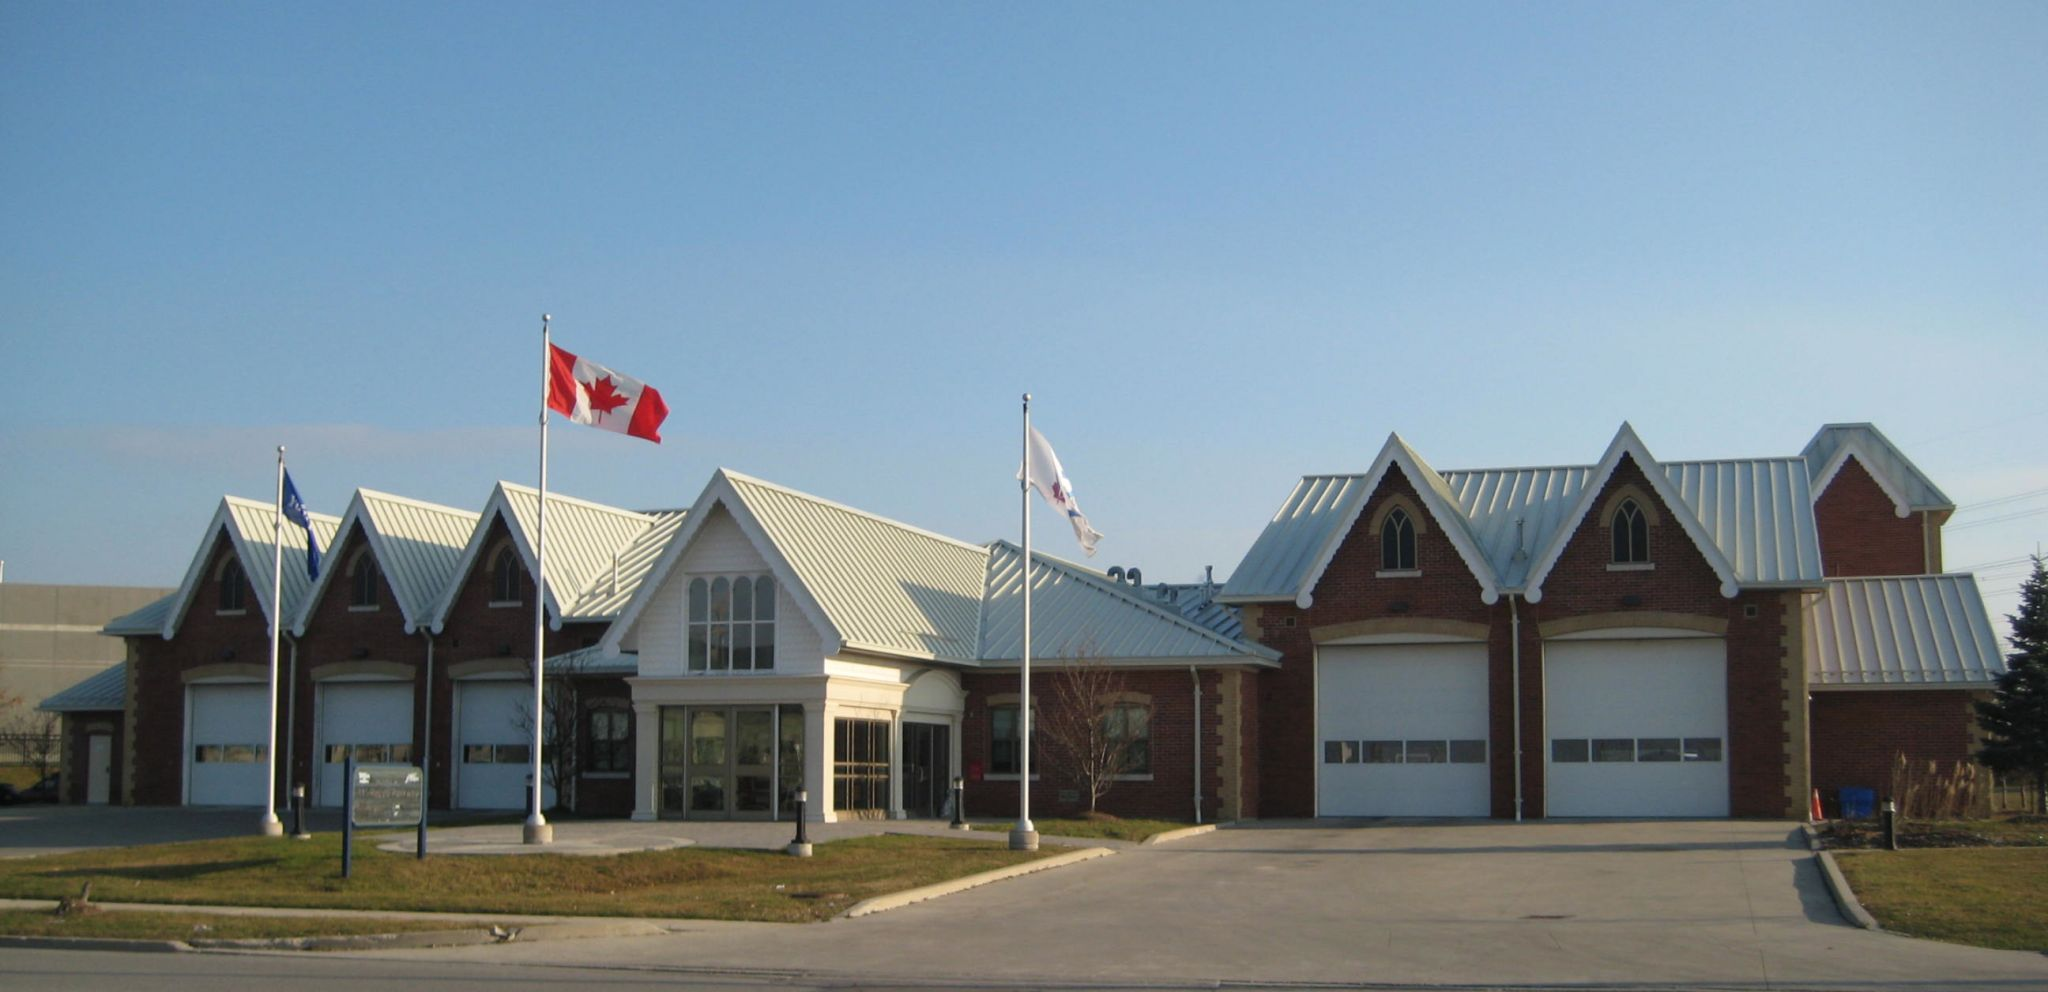 This township fi rehouse in Vaughan, Ont., employed symmetrical roof panels that facilitate easy installation of the roof from either end or the middle, ensuring symmetry.